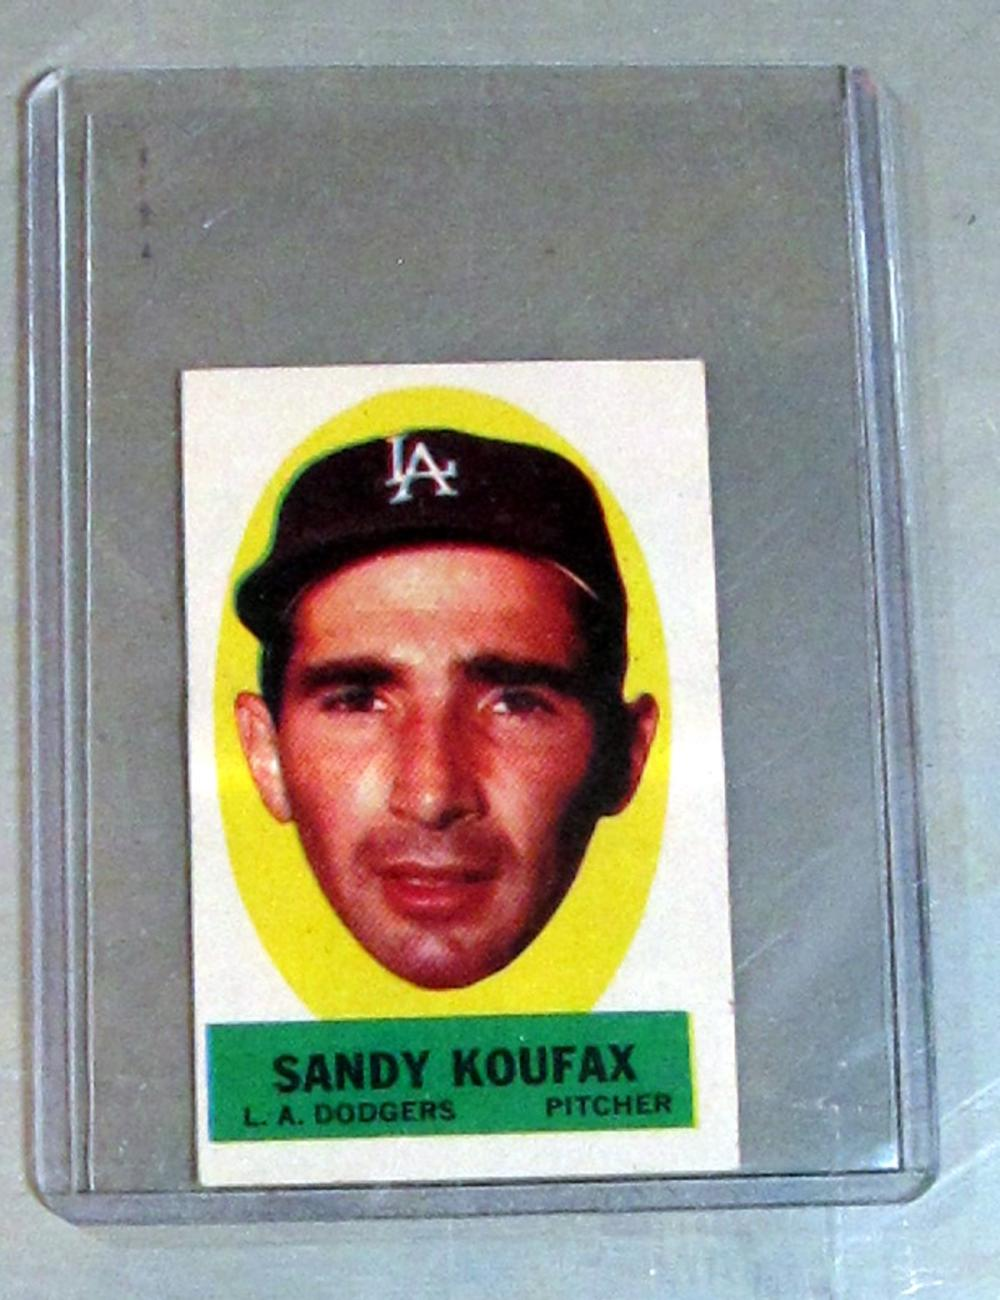 1963 TOPPS PEEL-OFFS INSERT SANDY KOUFAX HOF LOS ANGELES DODGERS EX-MT INSTRUCTION